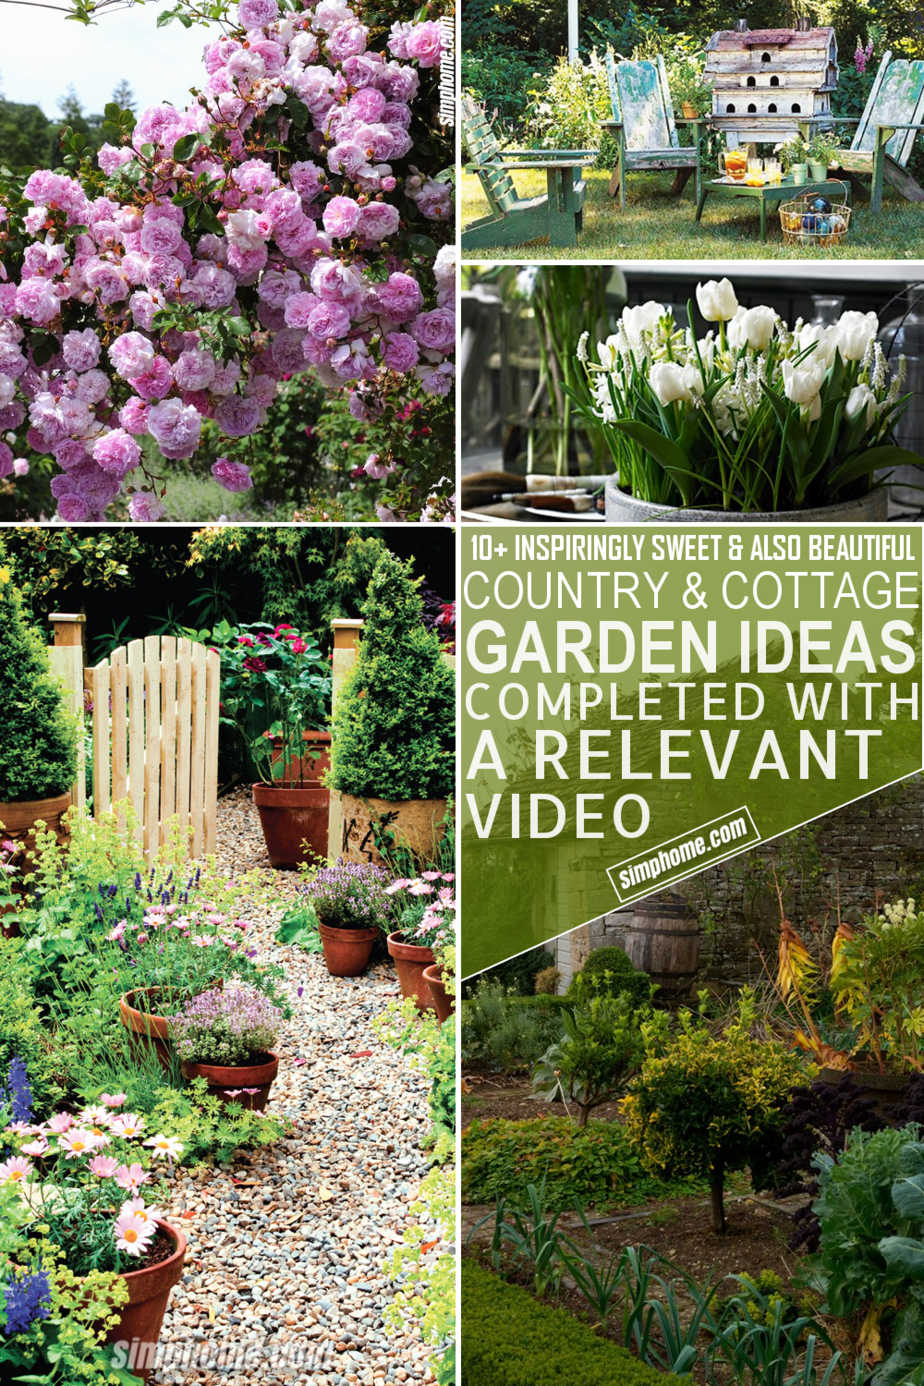 10 Country and Cottage Garden Decor Ideas via Simphome Pinterest Featured Image